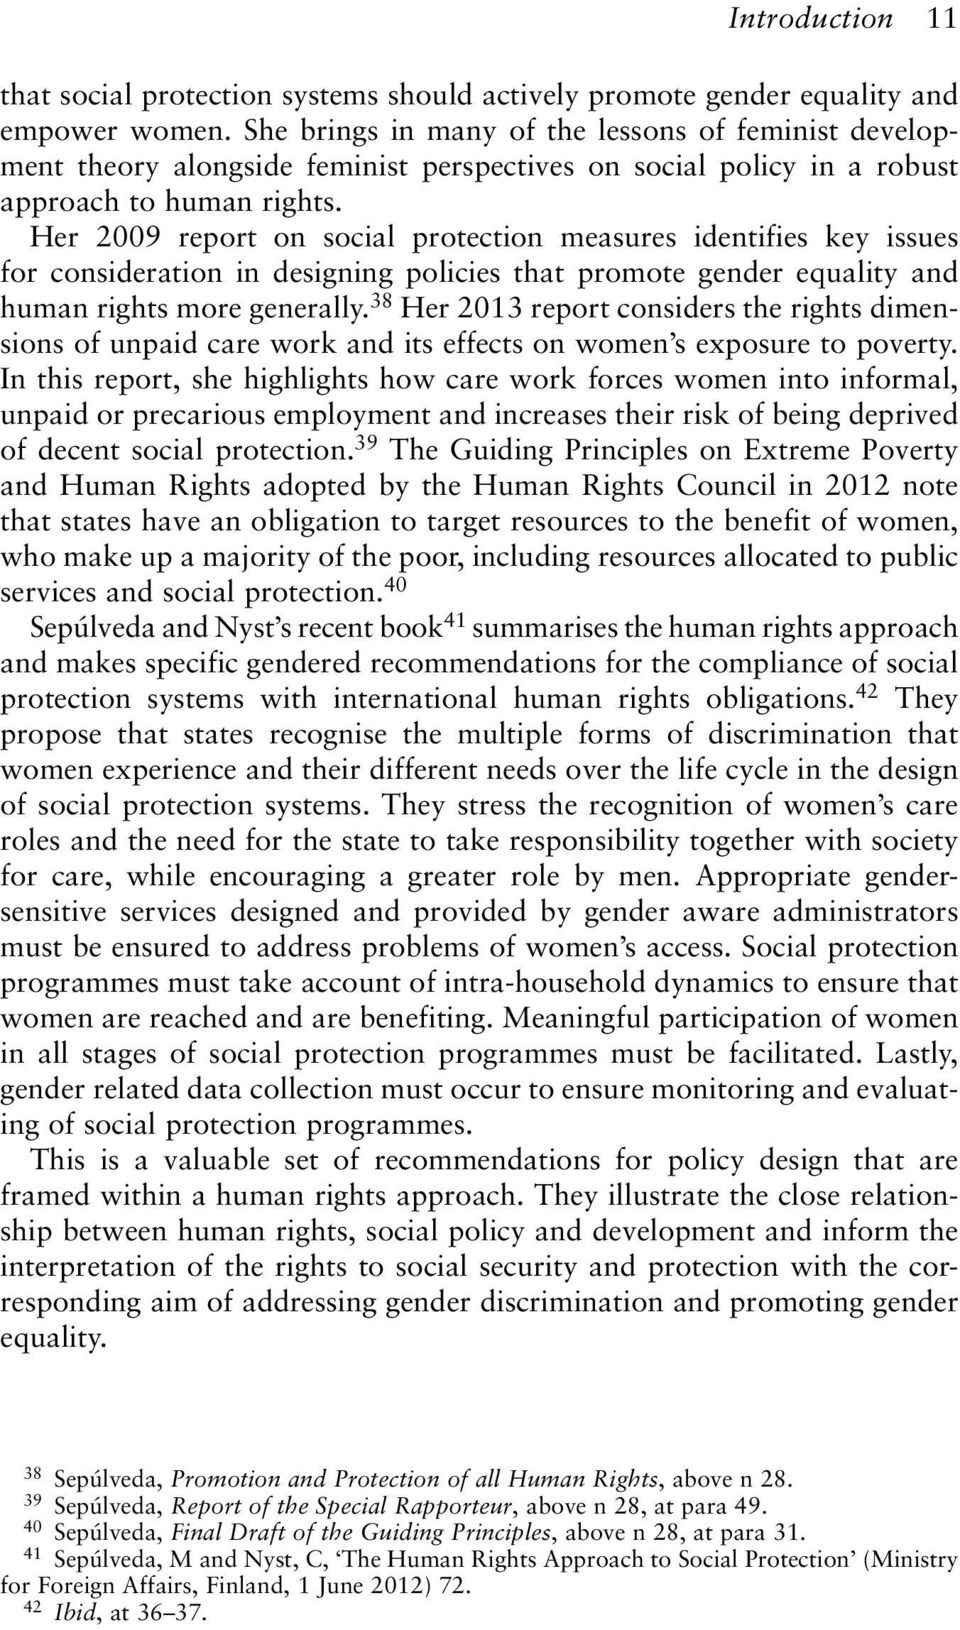 Her 2009 report on social protection measures identifies key issues for consideration in designing policies that promote gender equality and human rights more generally.